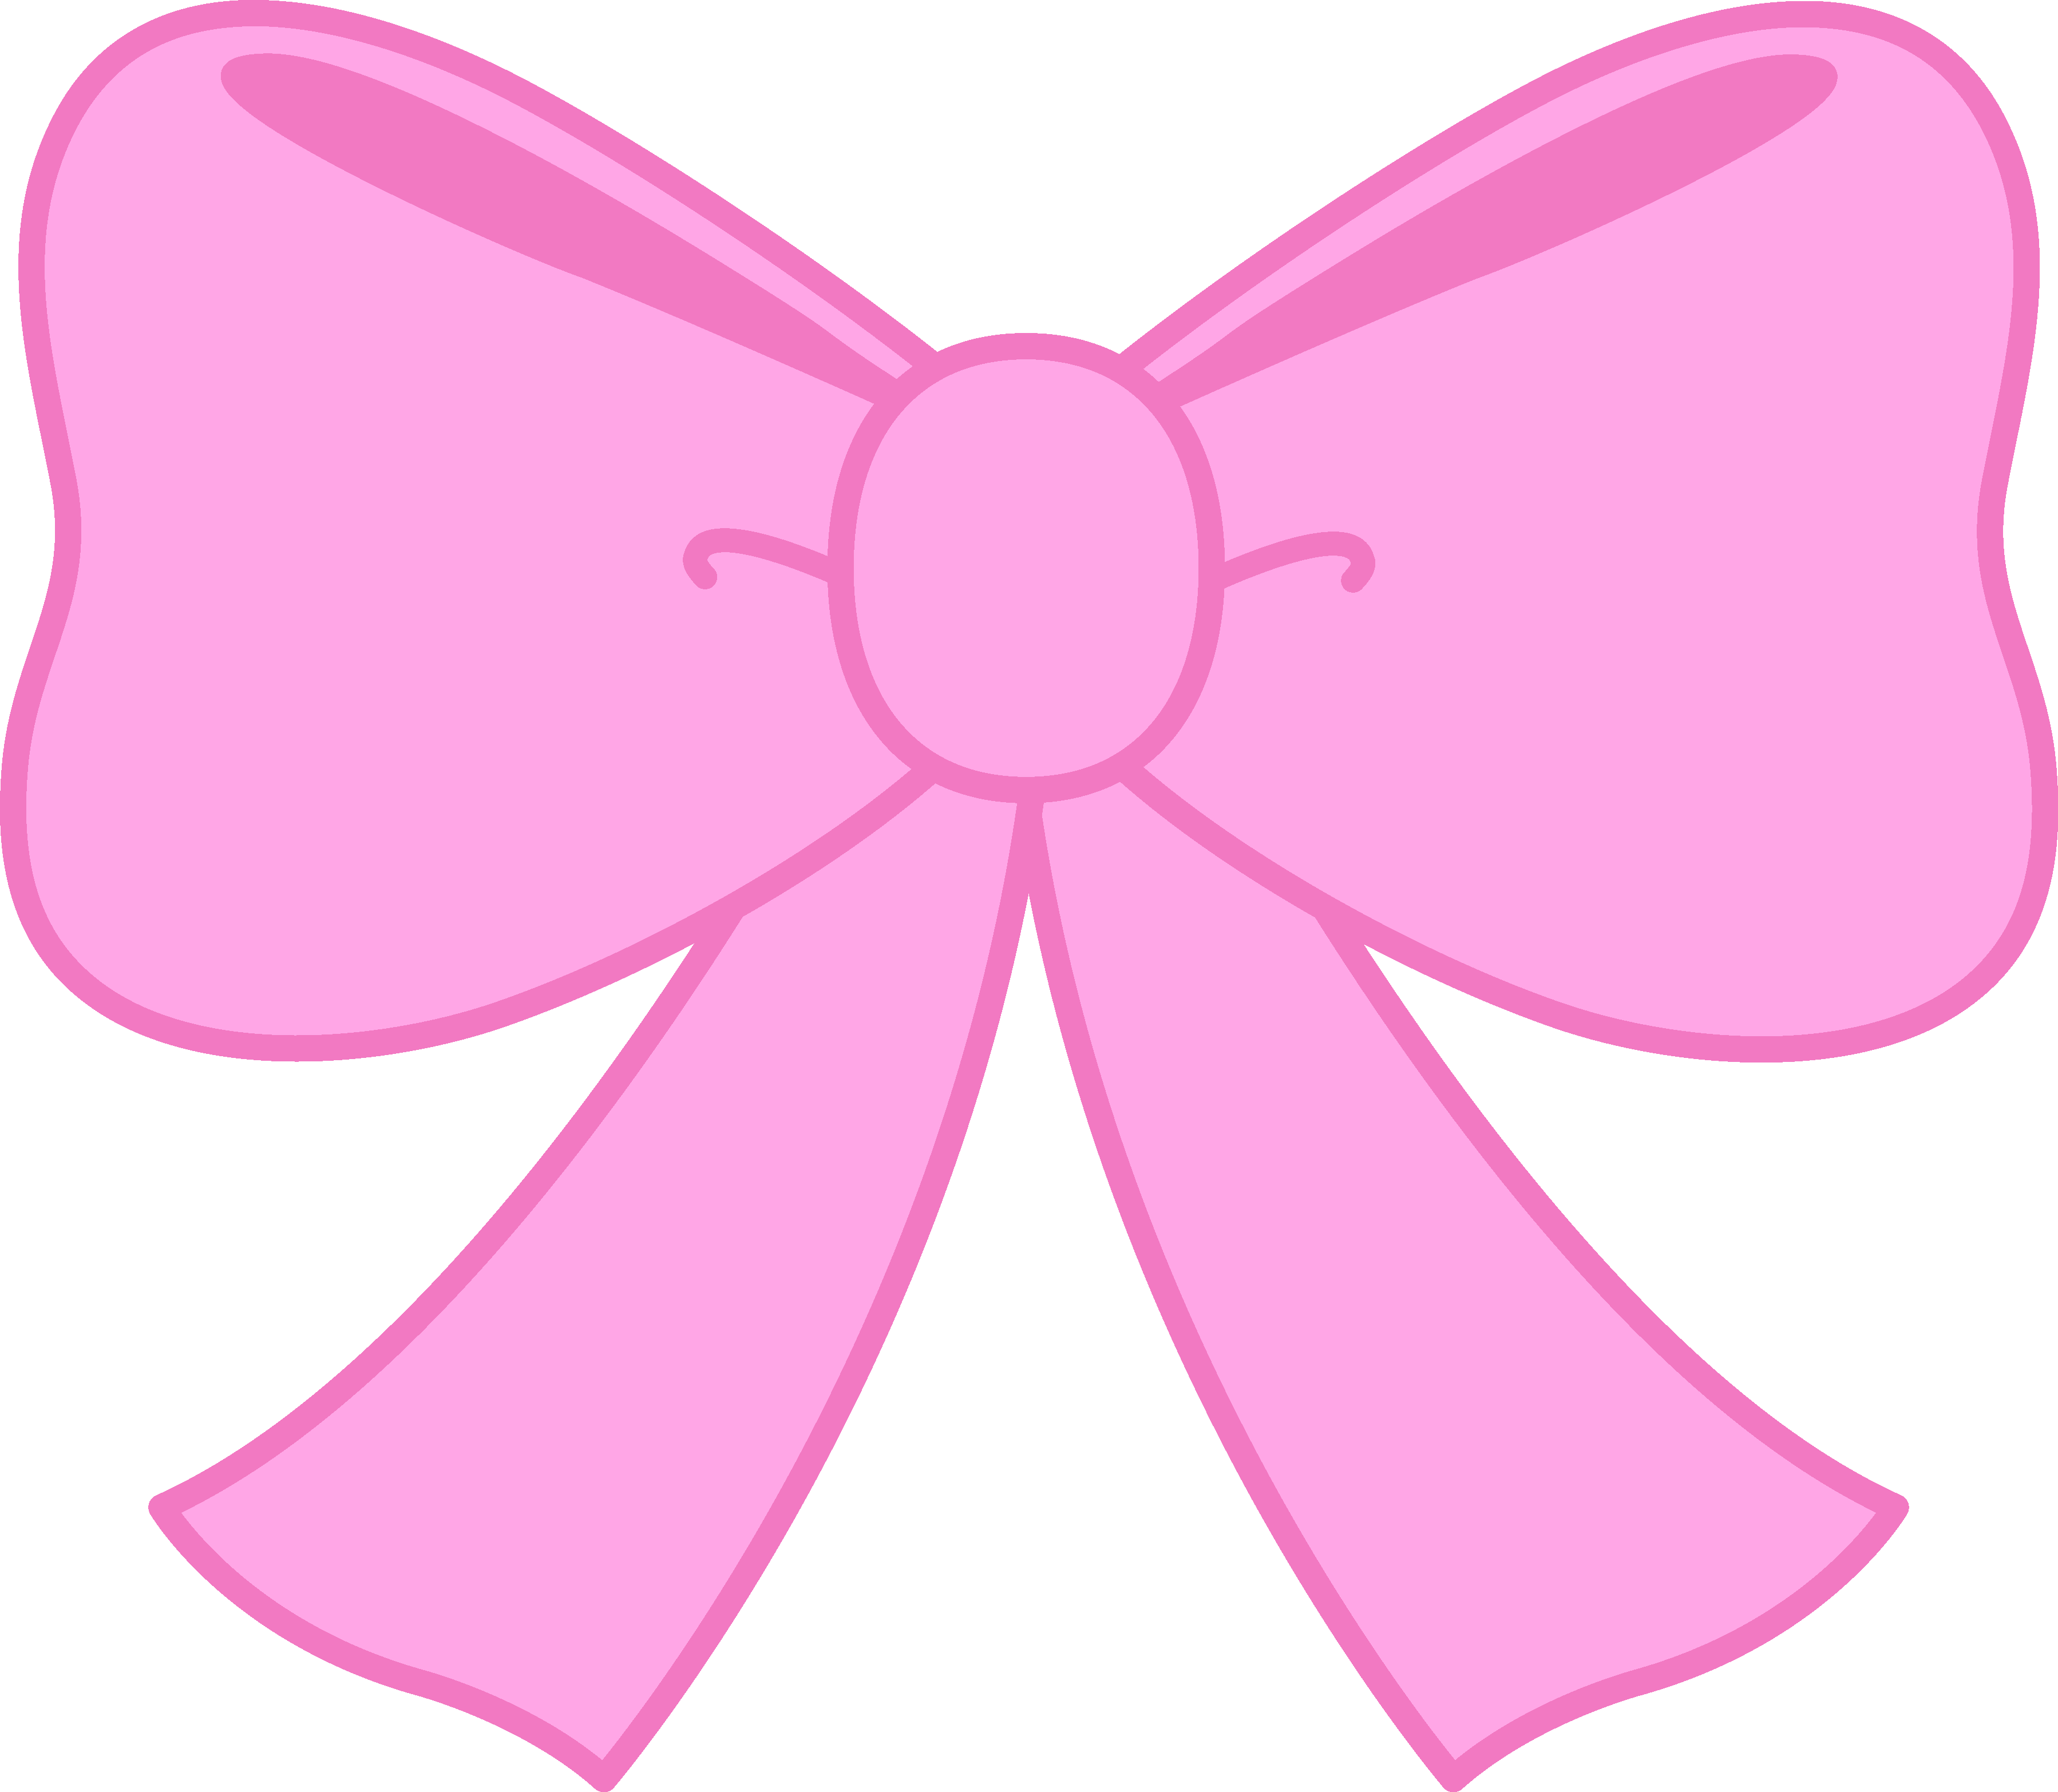 Free clipart of bows. Cute pink bow image